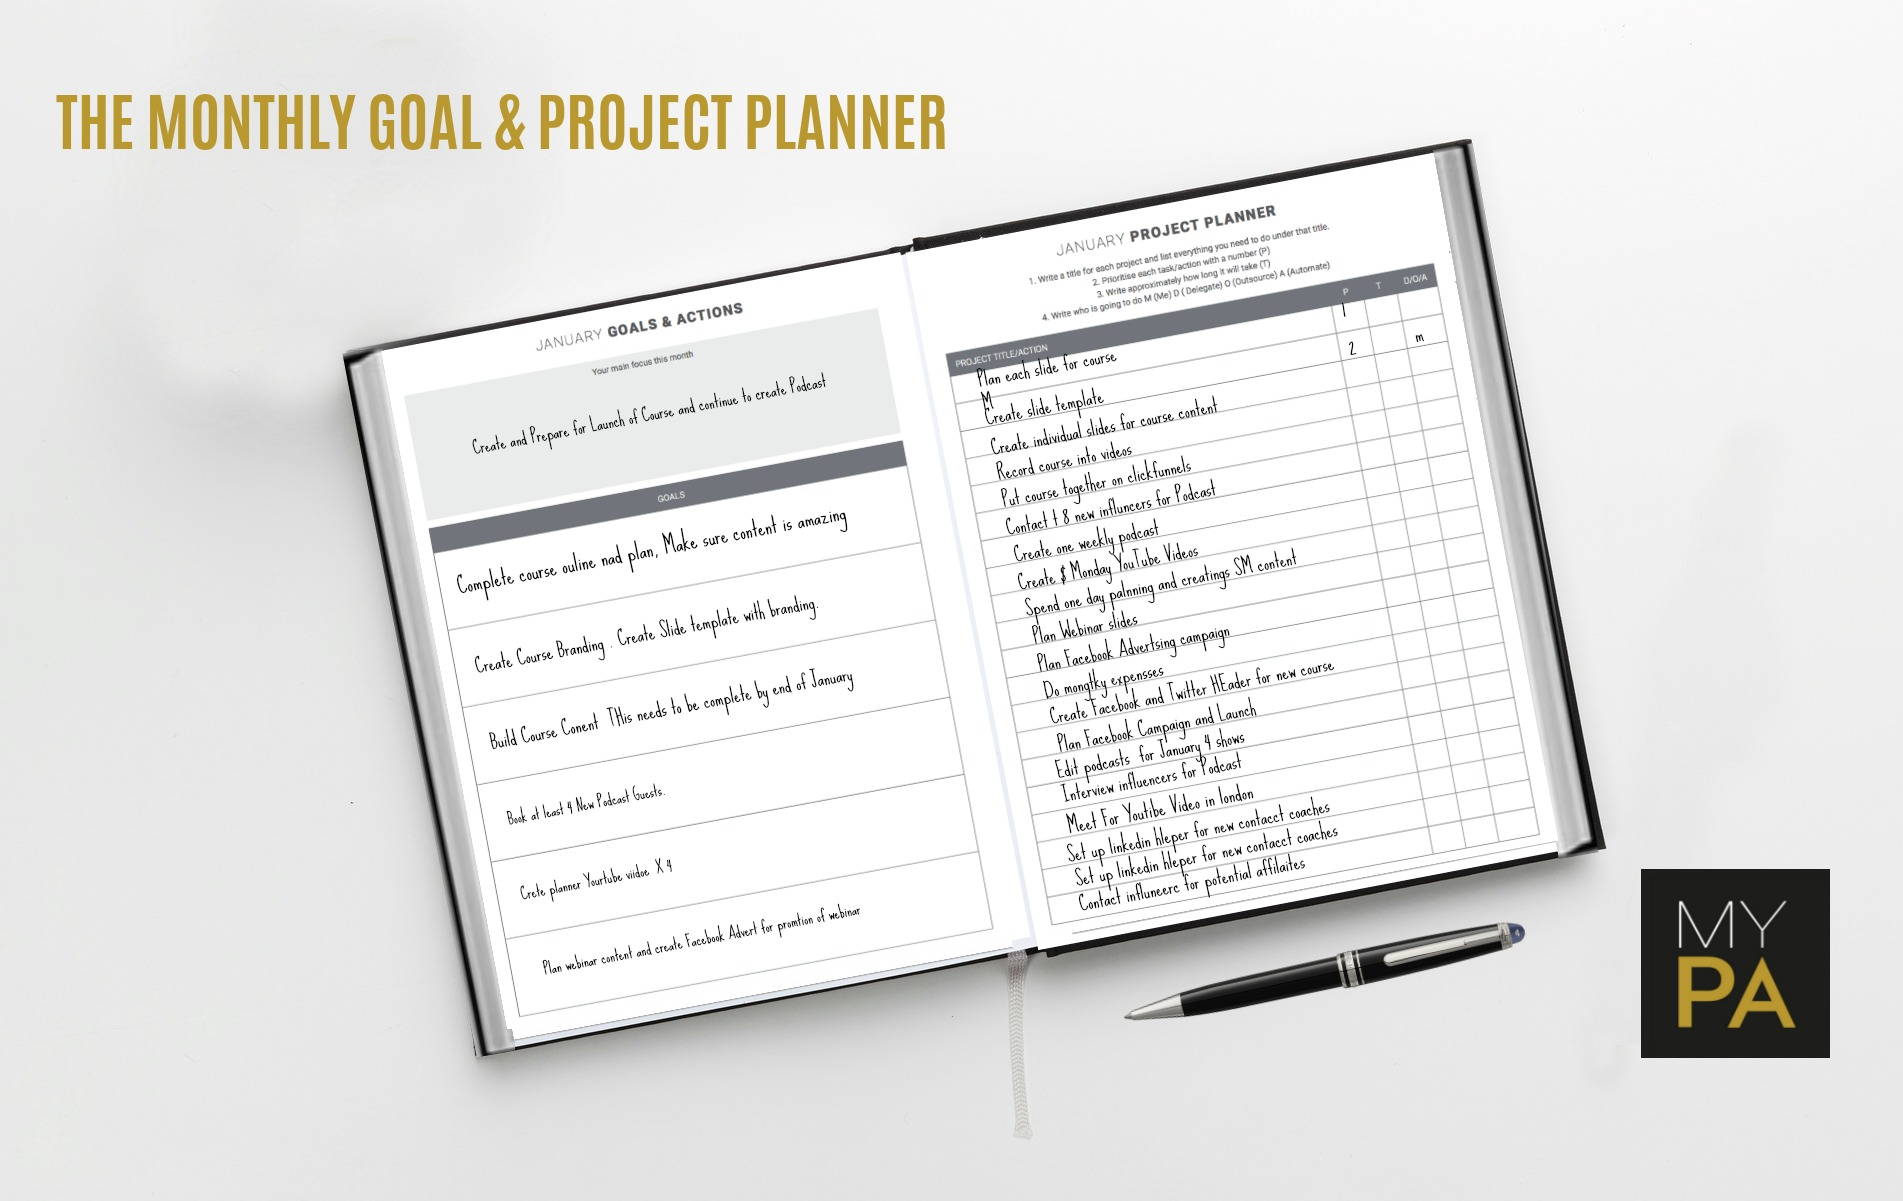 The Monthly planner guides you step by step through creating your big goals and then listing the projects you need to do to achieve those goals.